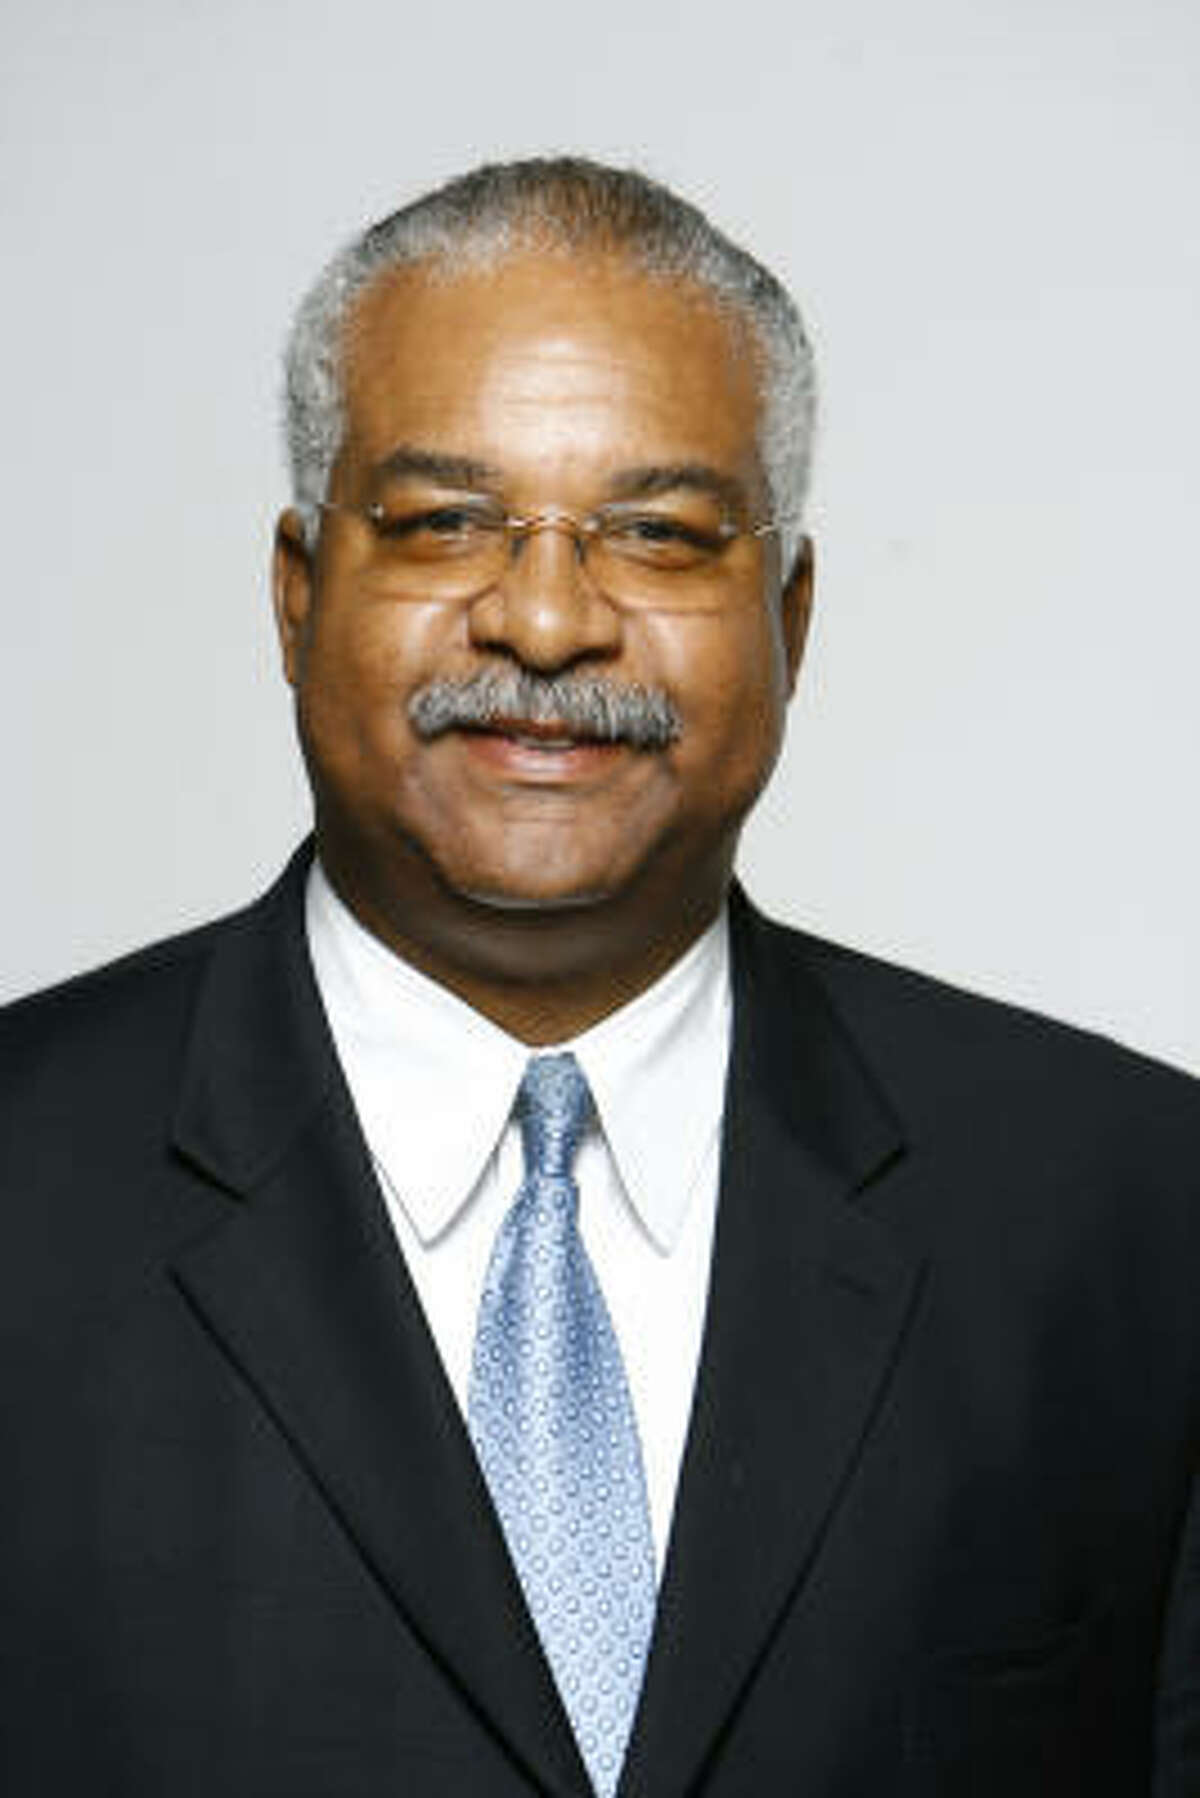 At-Large Position 5 candidate John C. Gibbs was indicted for felony assault after hitting his wife with a belt in 1998.